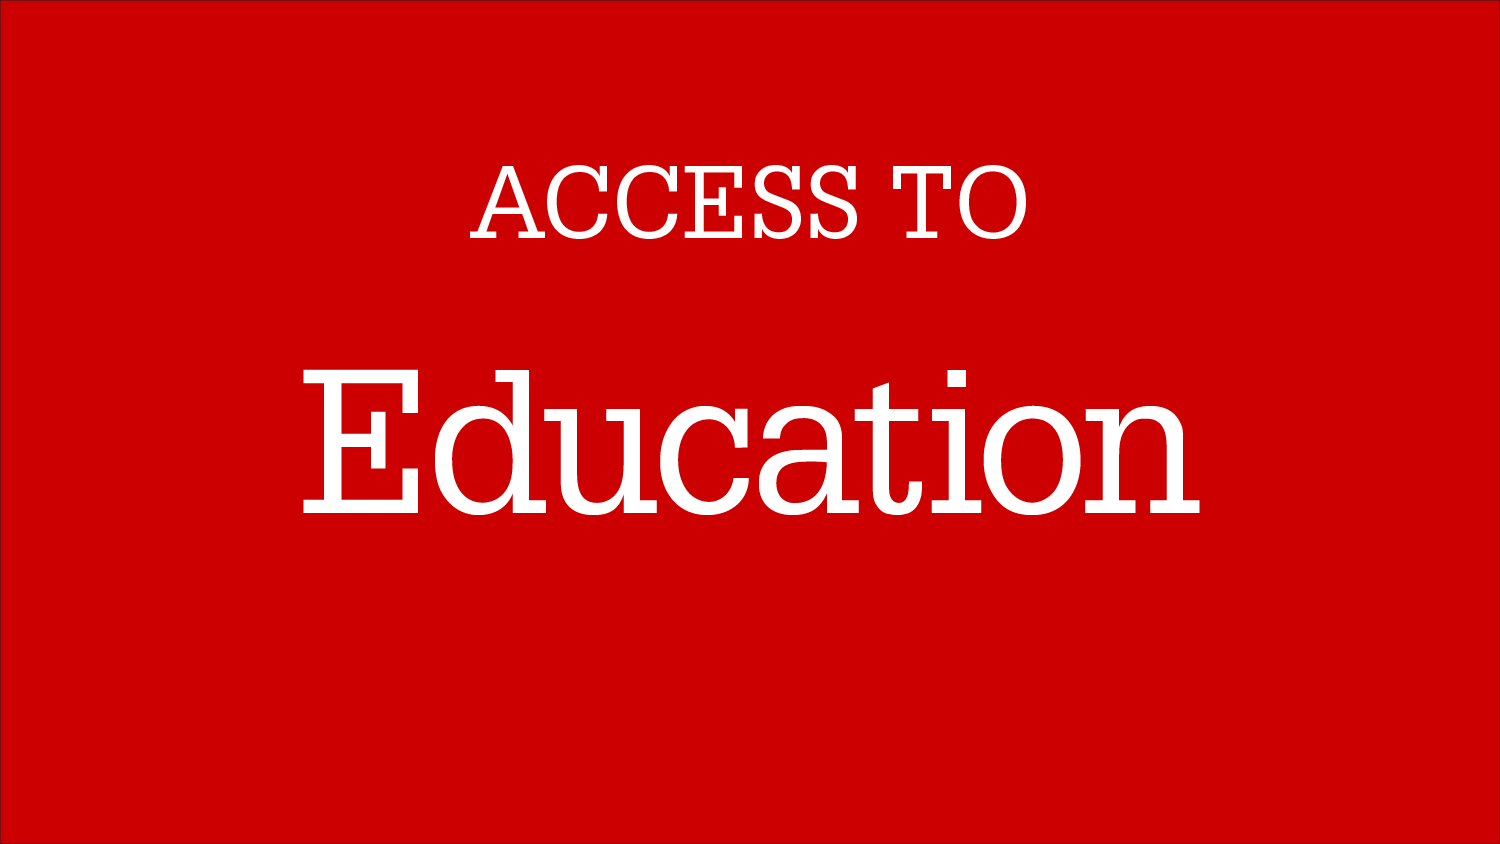 Graphic Image: Access To Education